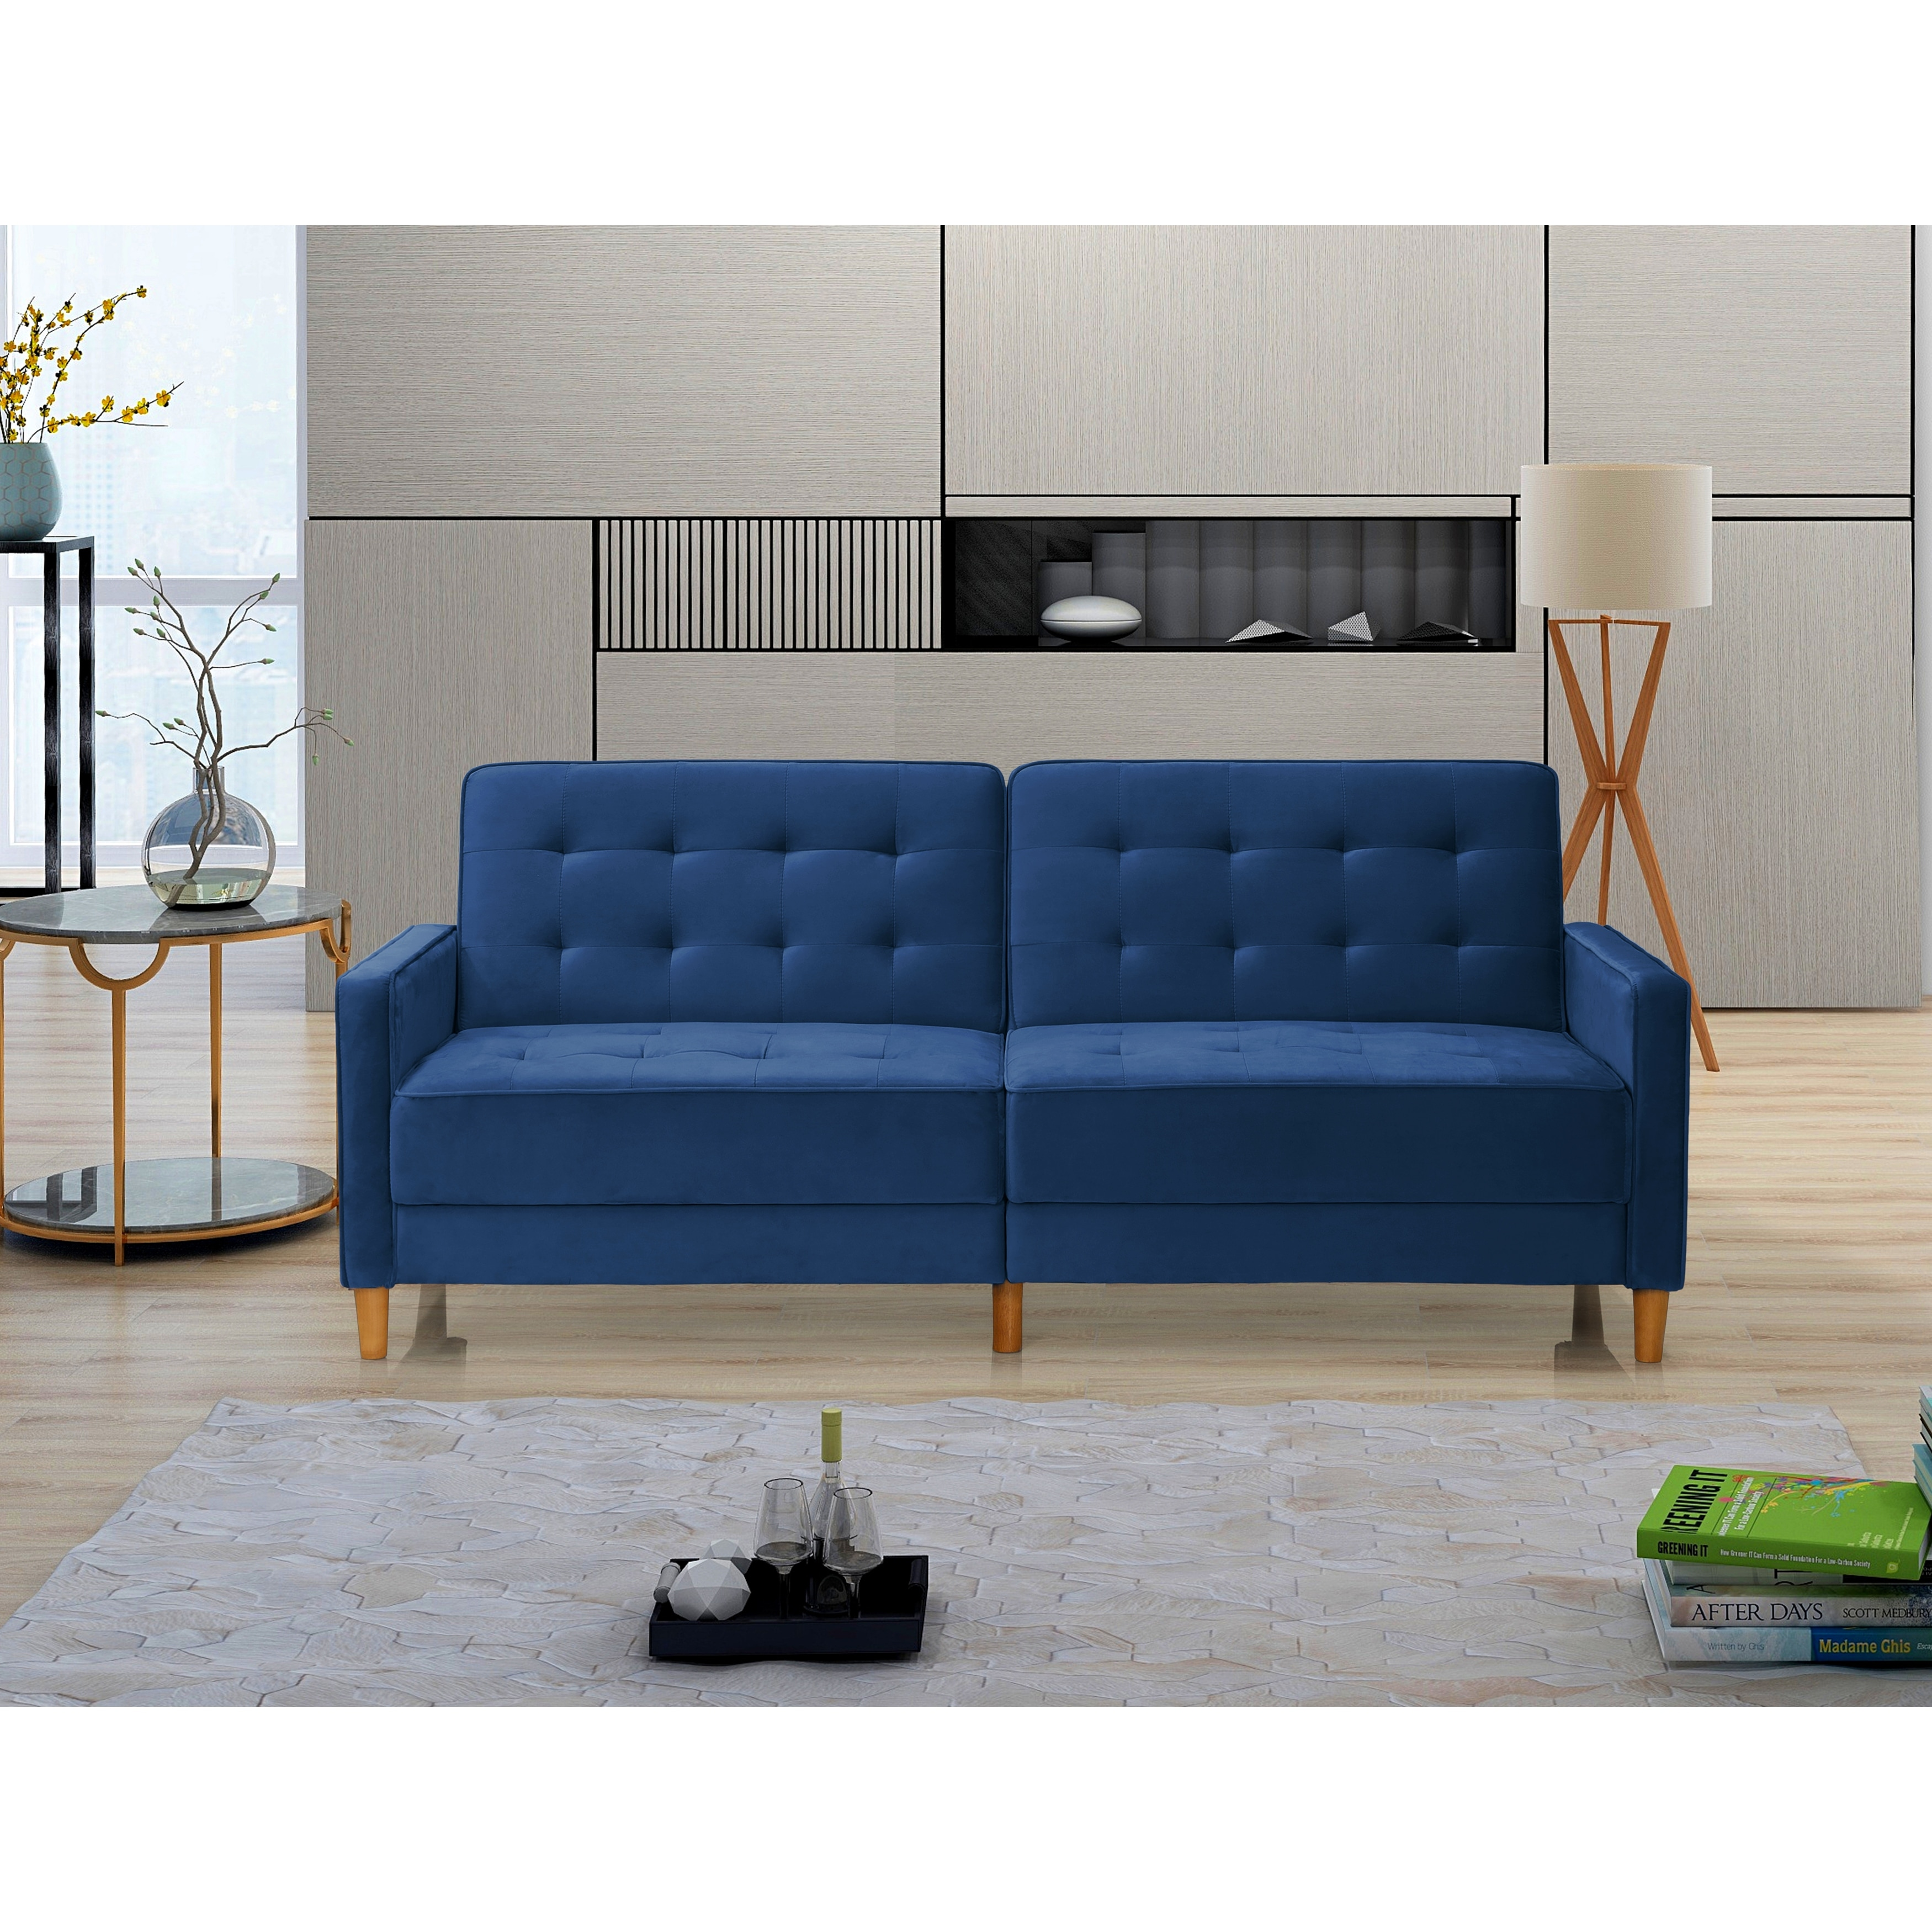 Modern Velvet Upholstered Sofa Bed With Square Arms Overstock 32486880